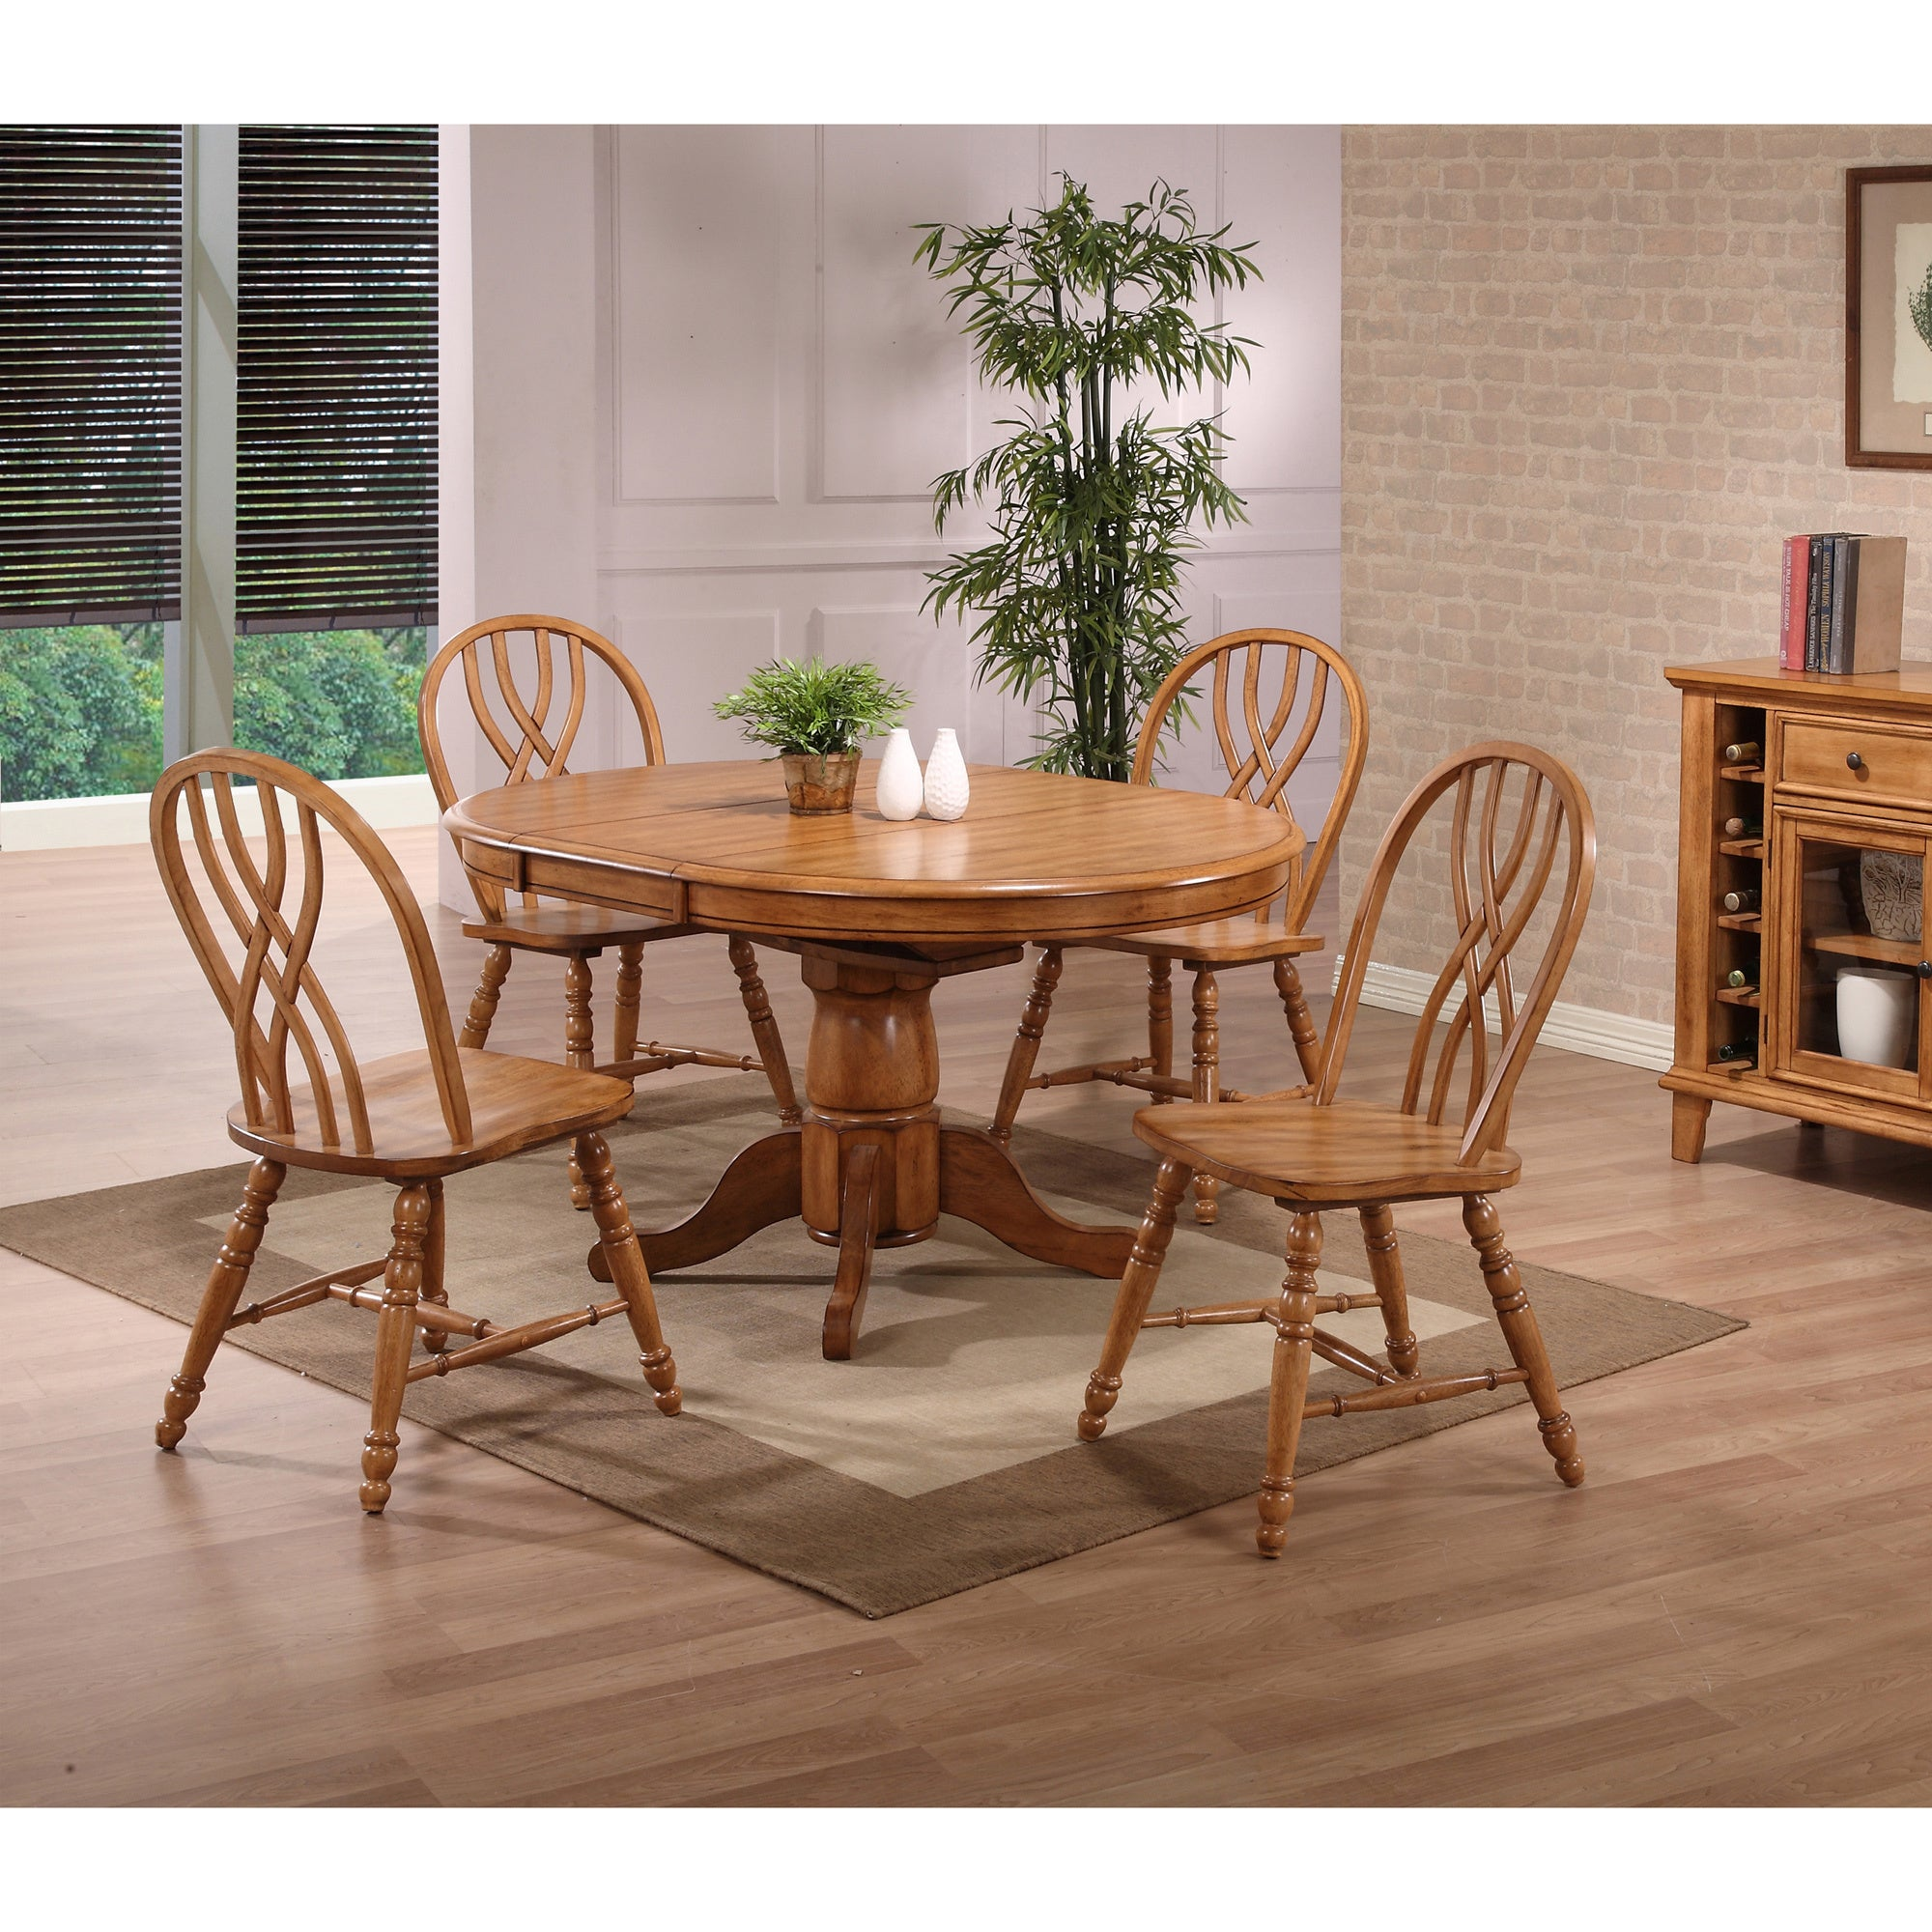 Coast Whitaker Furniture Missouri Oak (Brown) Round Dinin...